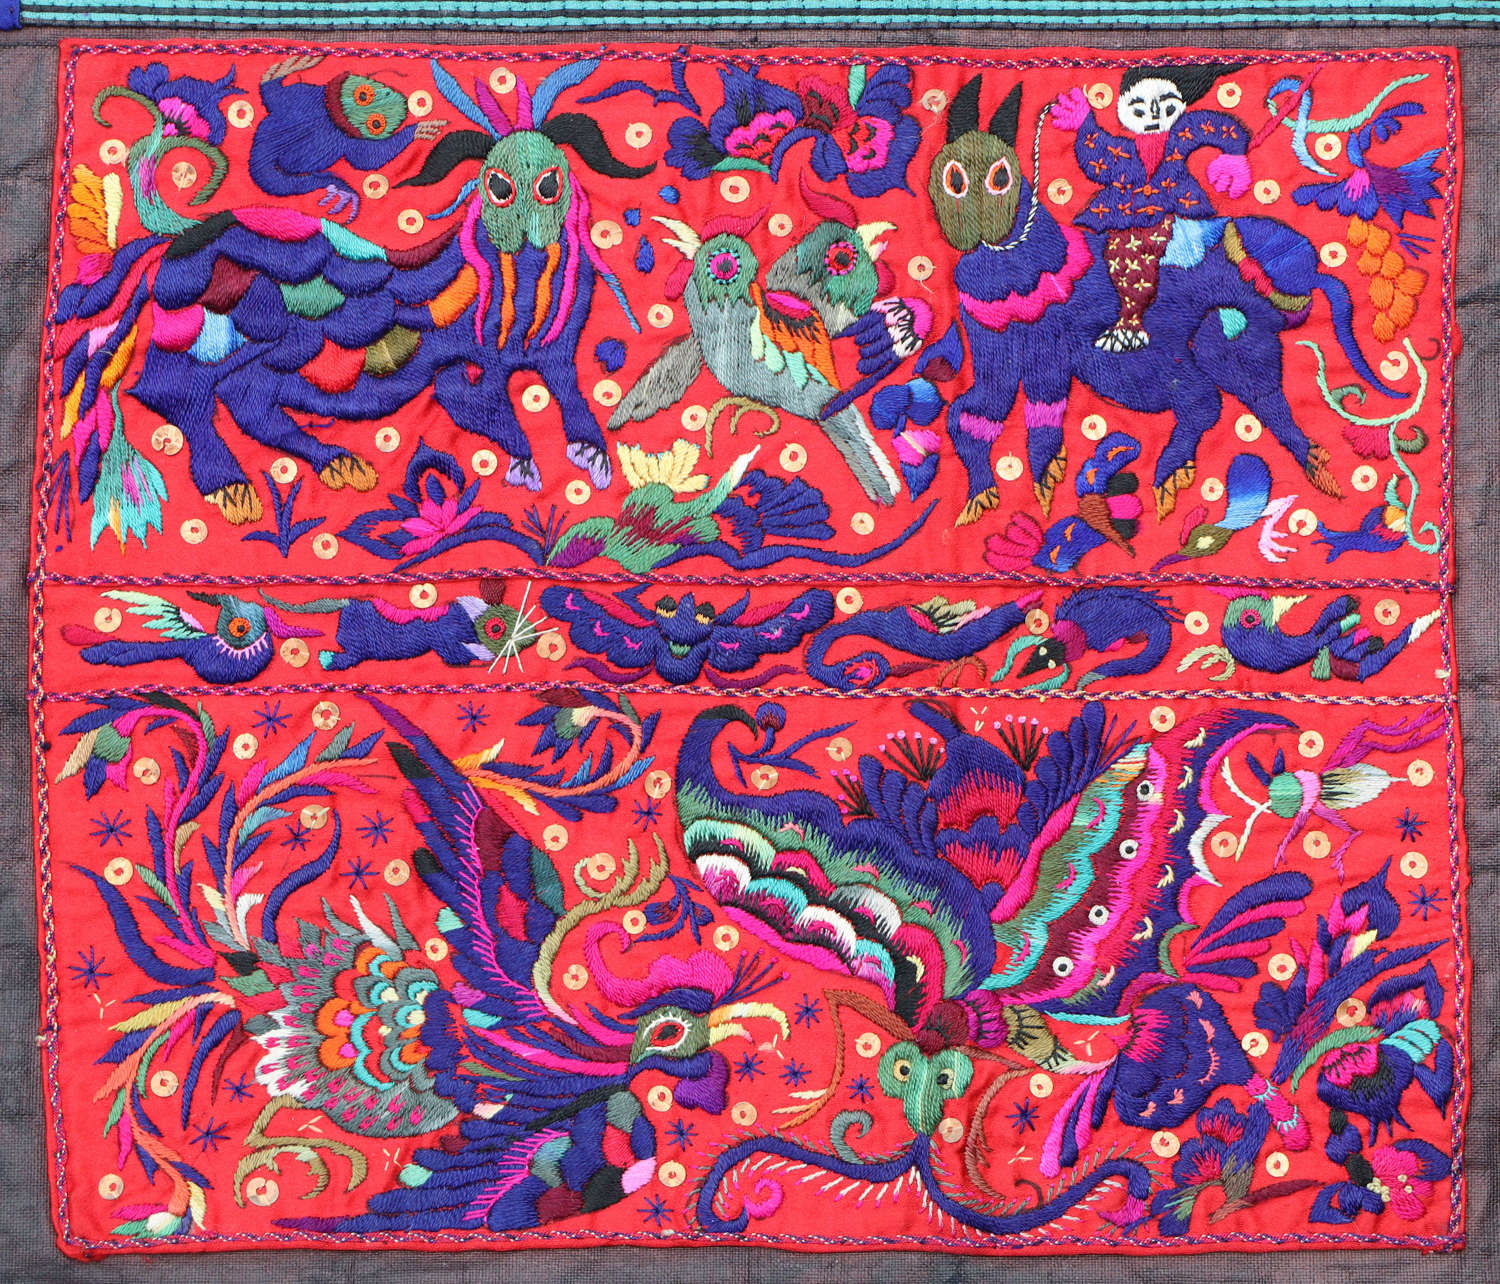 A pair of Miao minority embroidered panels from South China